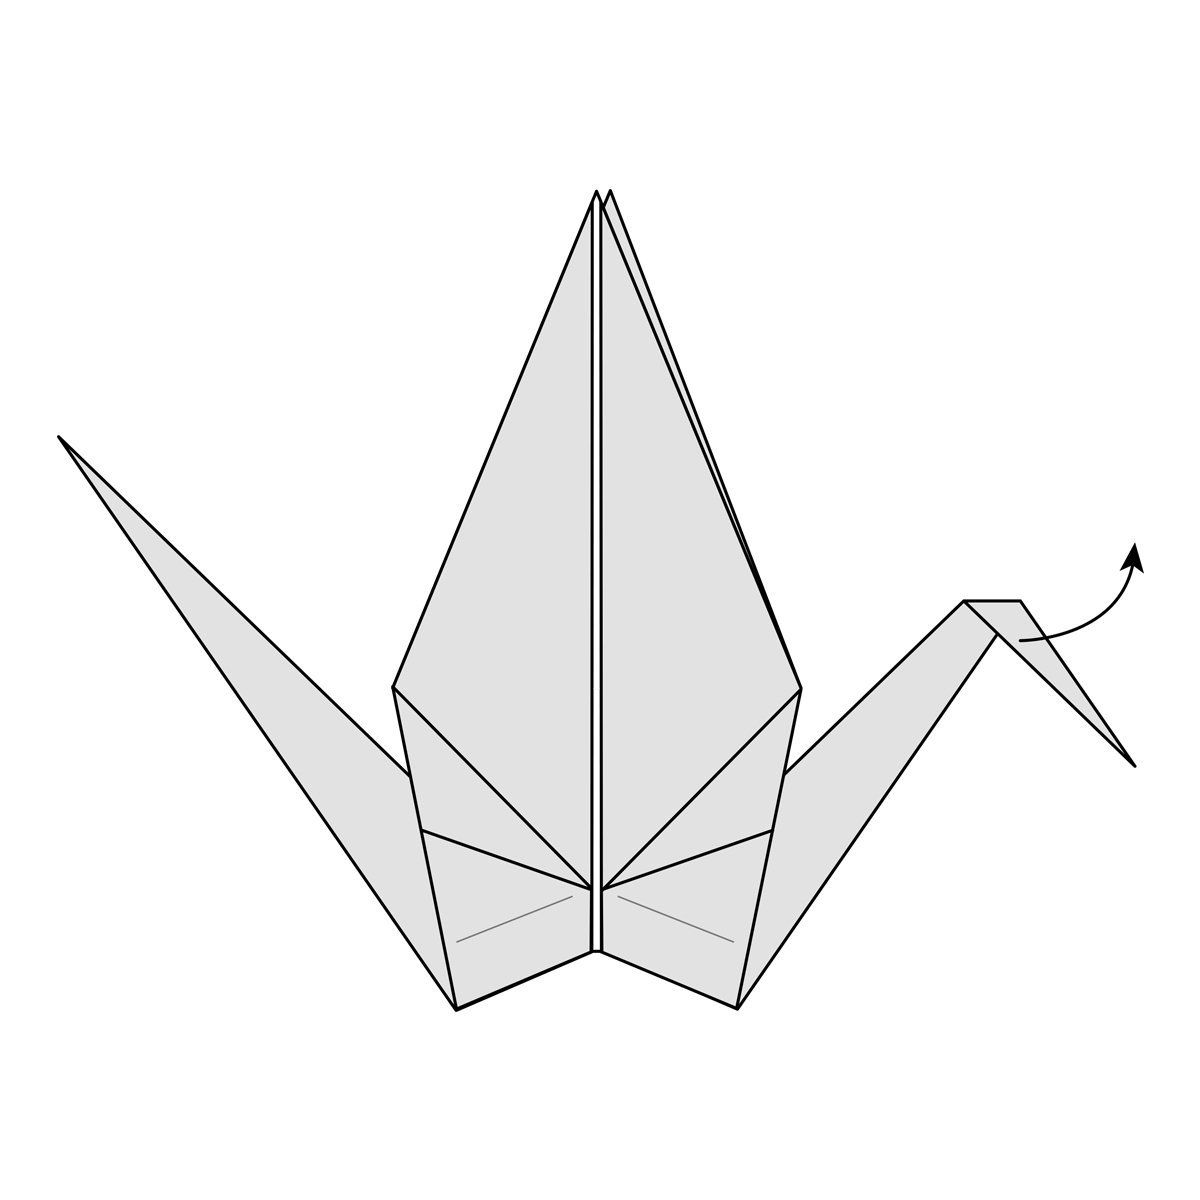 Origami Crane - How to Fold a Traditional Paper Crane | 1200x1200